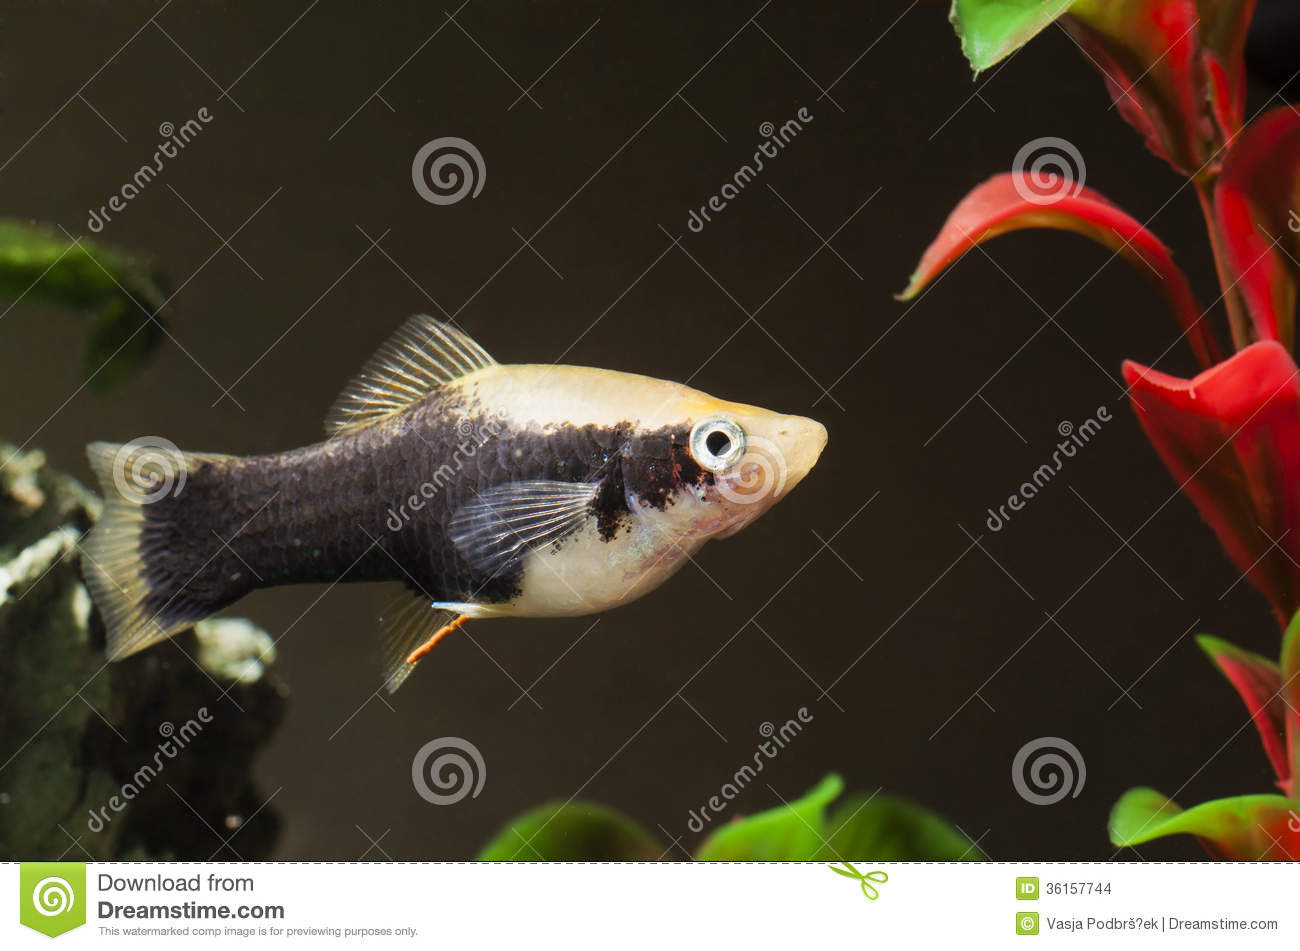 Aquarium fish stock images image 36157744 for Small tropical fish